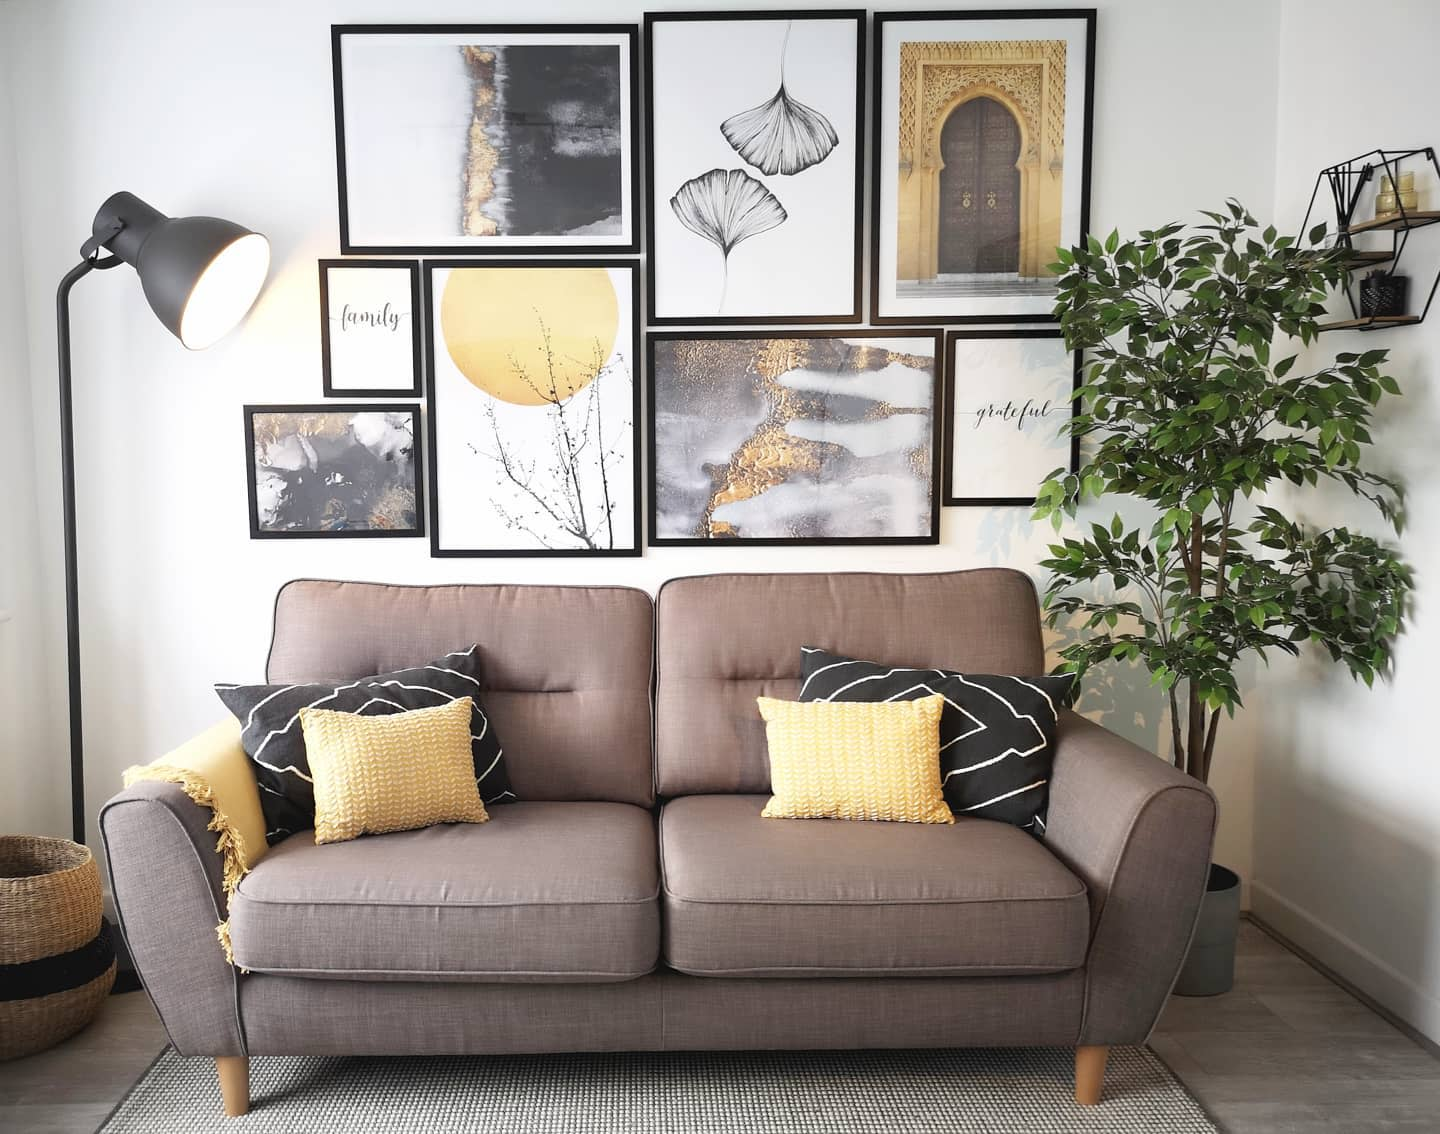 Livingroom Wall Collage Ideas -withloverabz